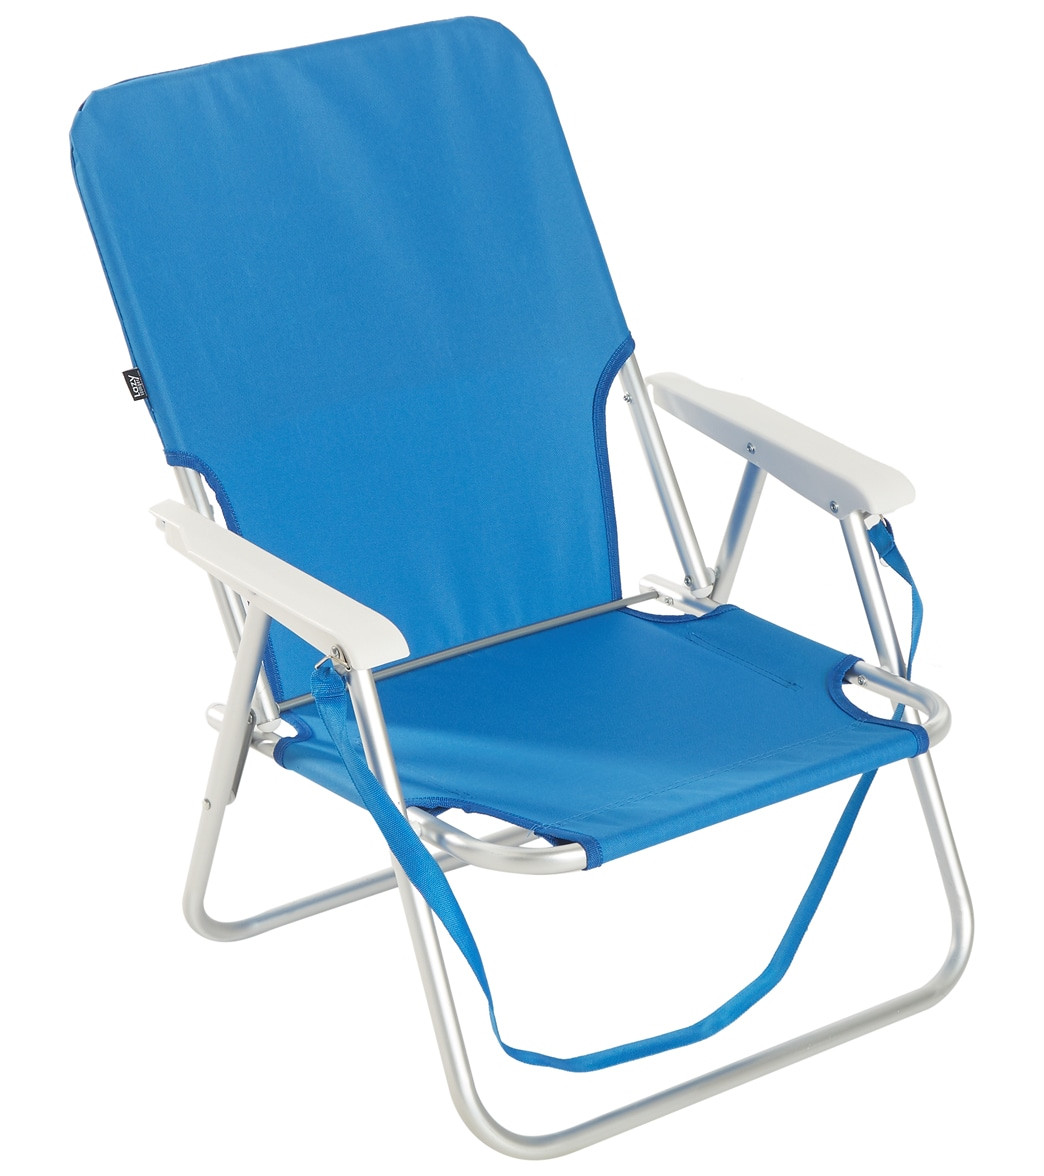 Beach Sling Chair Wet Products Sling Strap Beach Chair At Swimoutlet